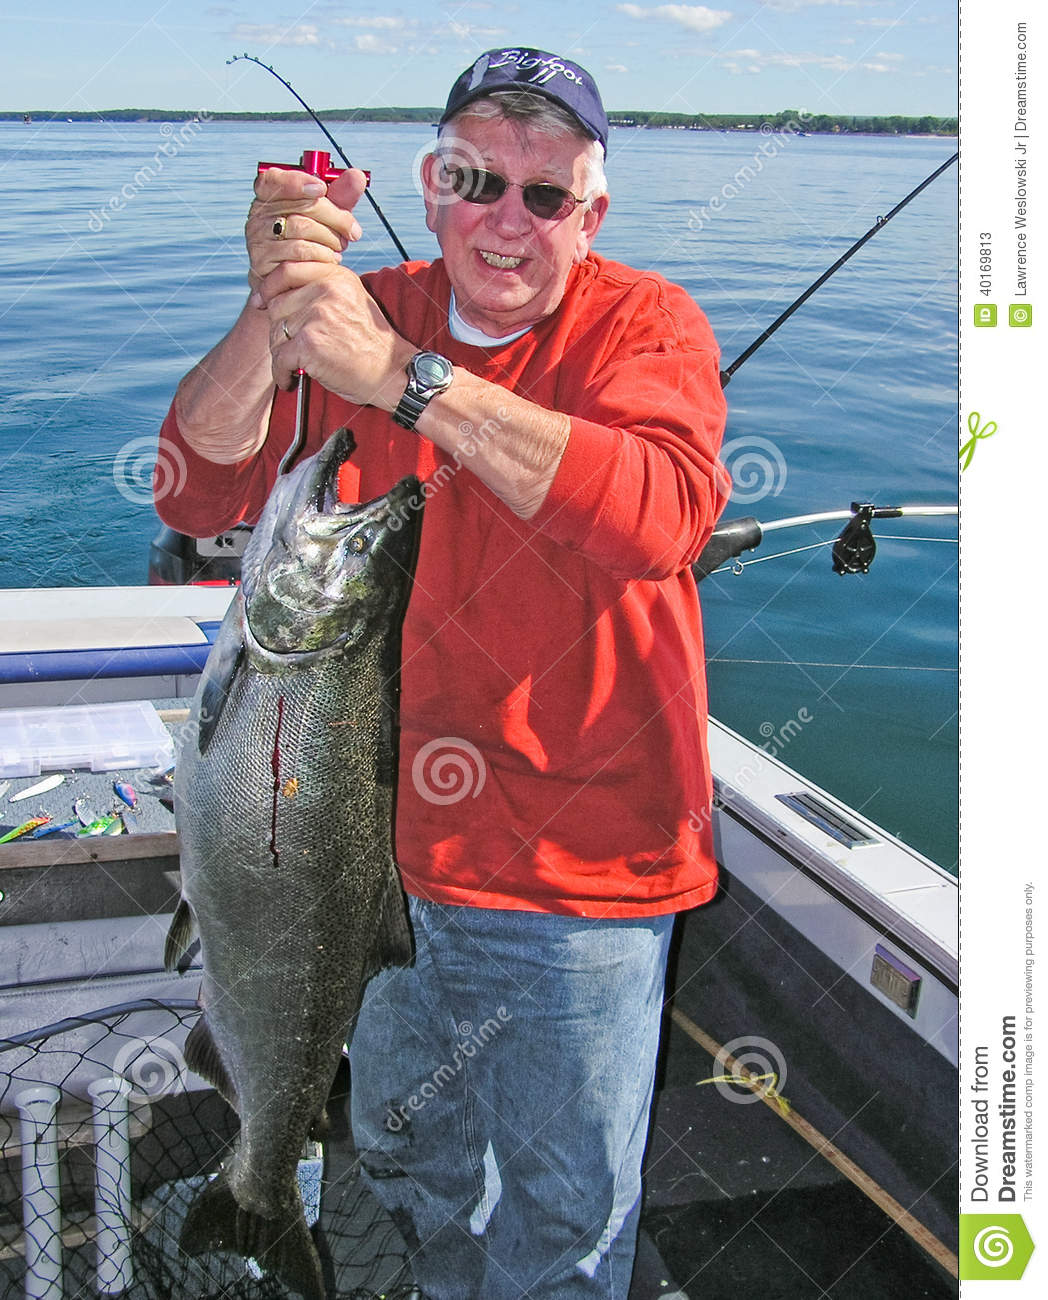 king salmon single guys Start with king salmon fishing, sockeye salmon fishing, silver salmon fishing, trout fishing or halibut fishing we also offer flyout fishing take a look at our great alaska fishing packages, which are all designed for you to get the most fishing out of your fishing vacation we offer the best value and competitive pricing.